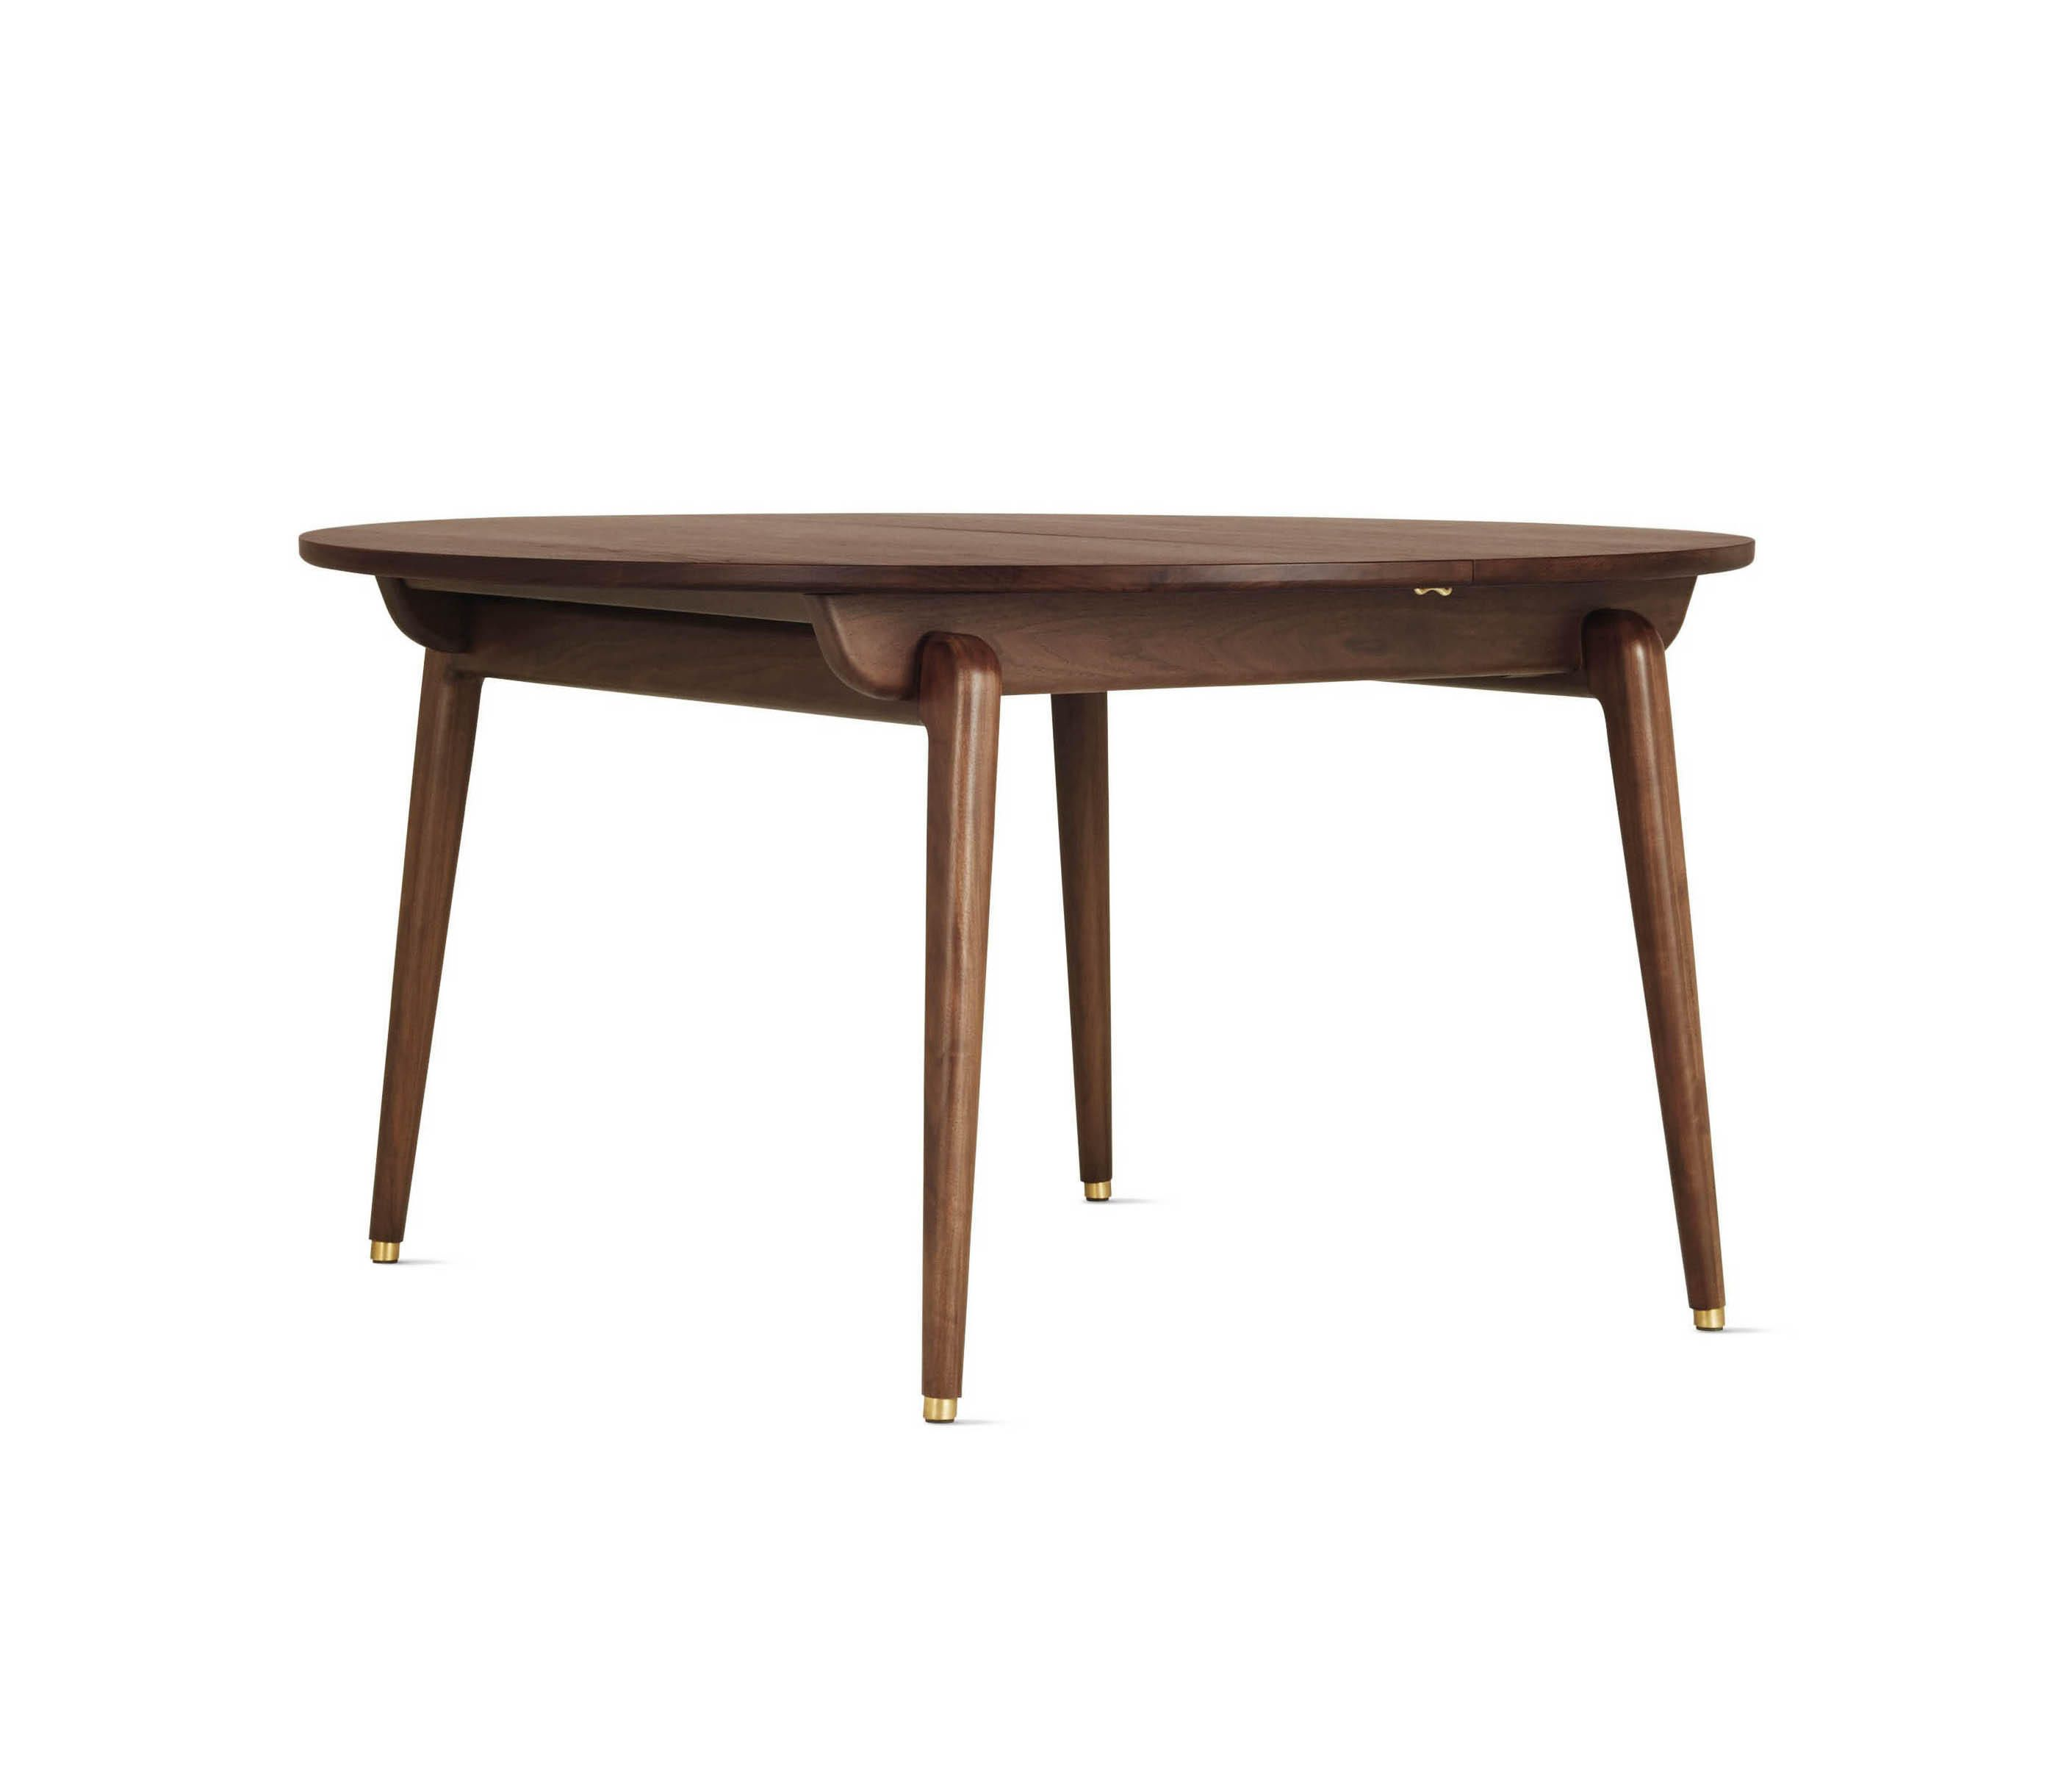 Odin Round Extension Table Designer Dining Tables From Design